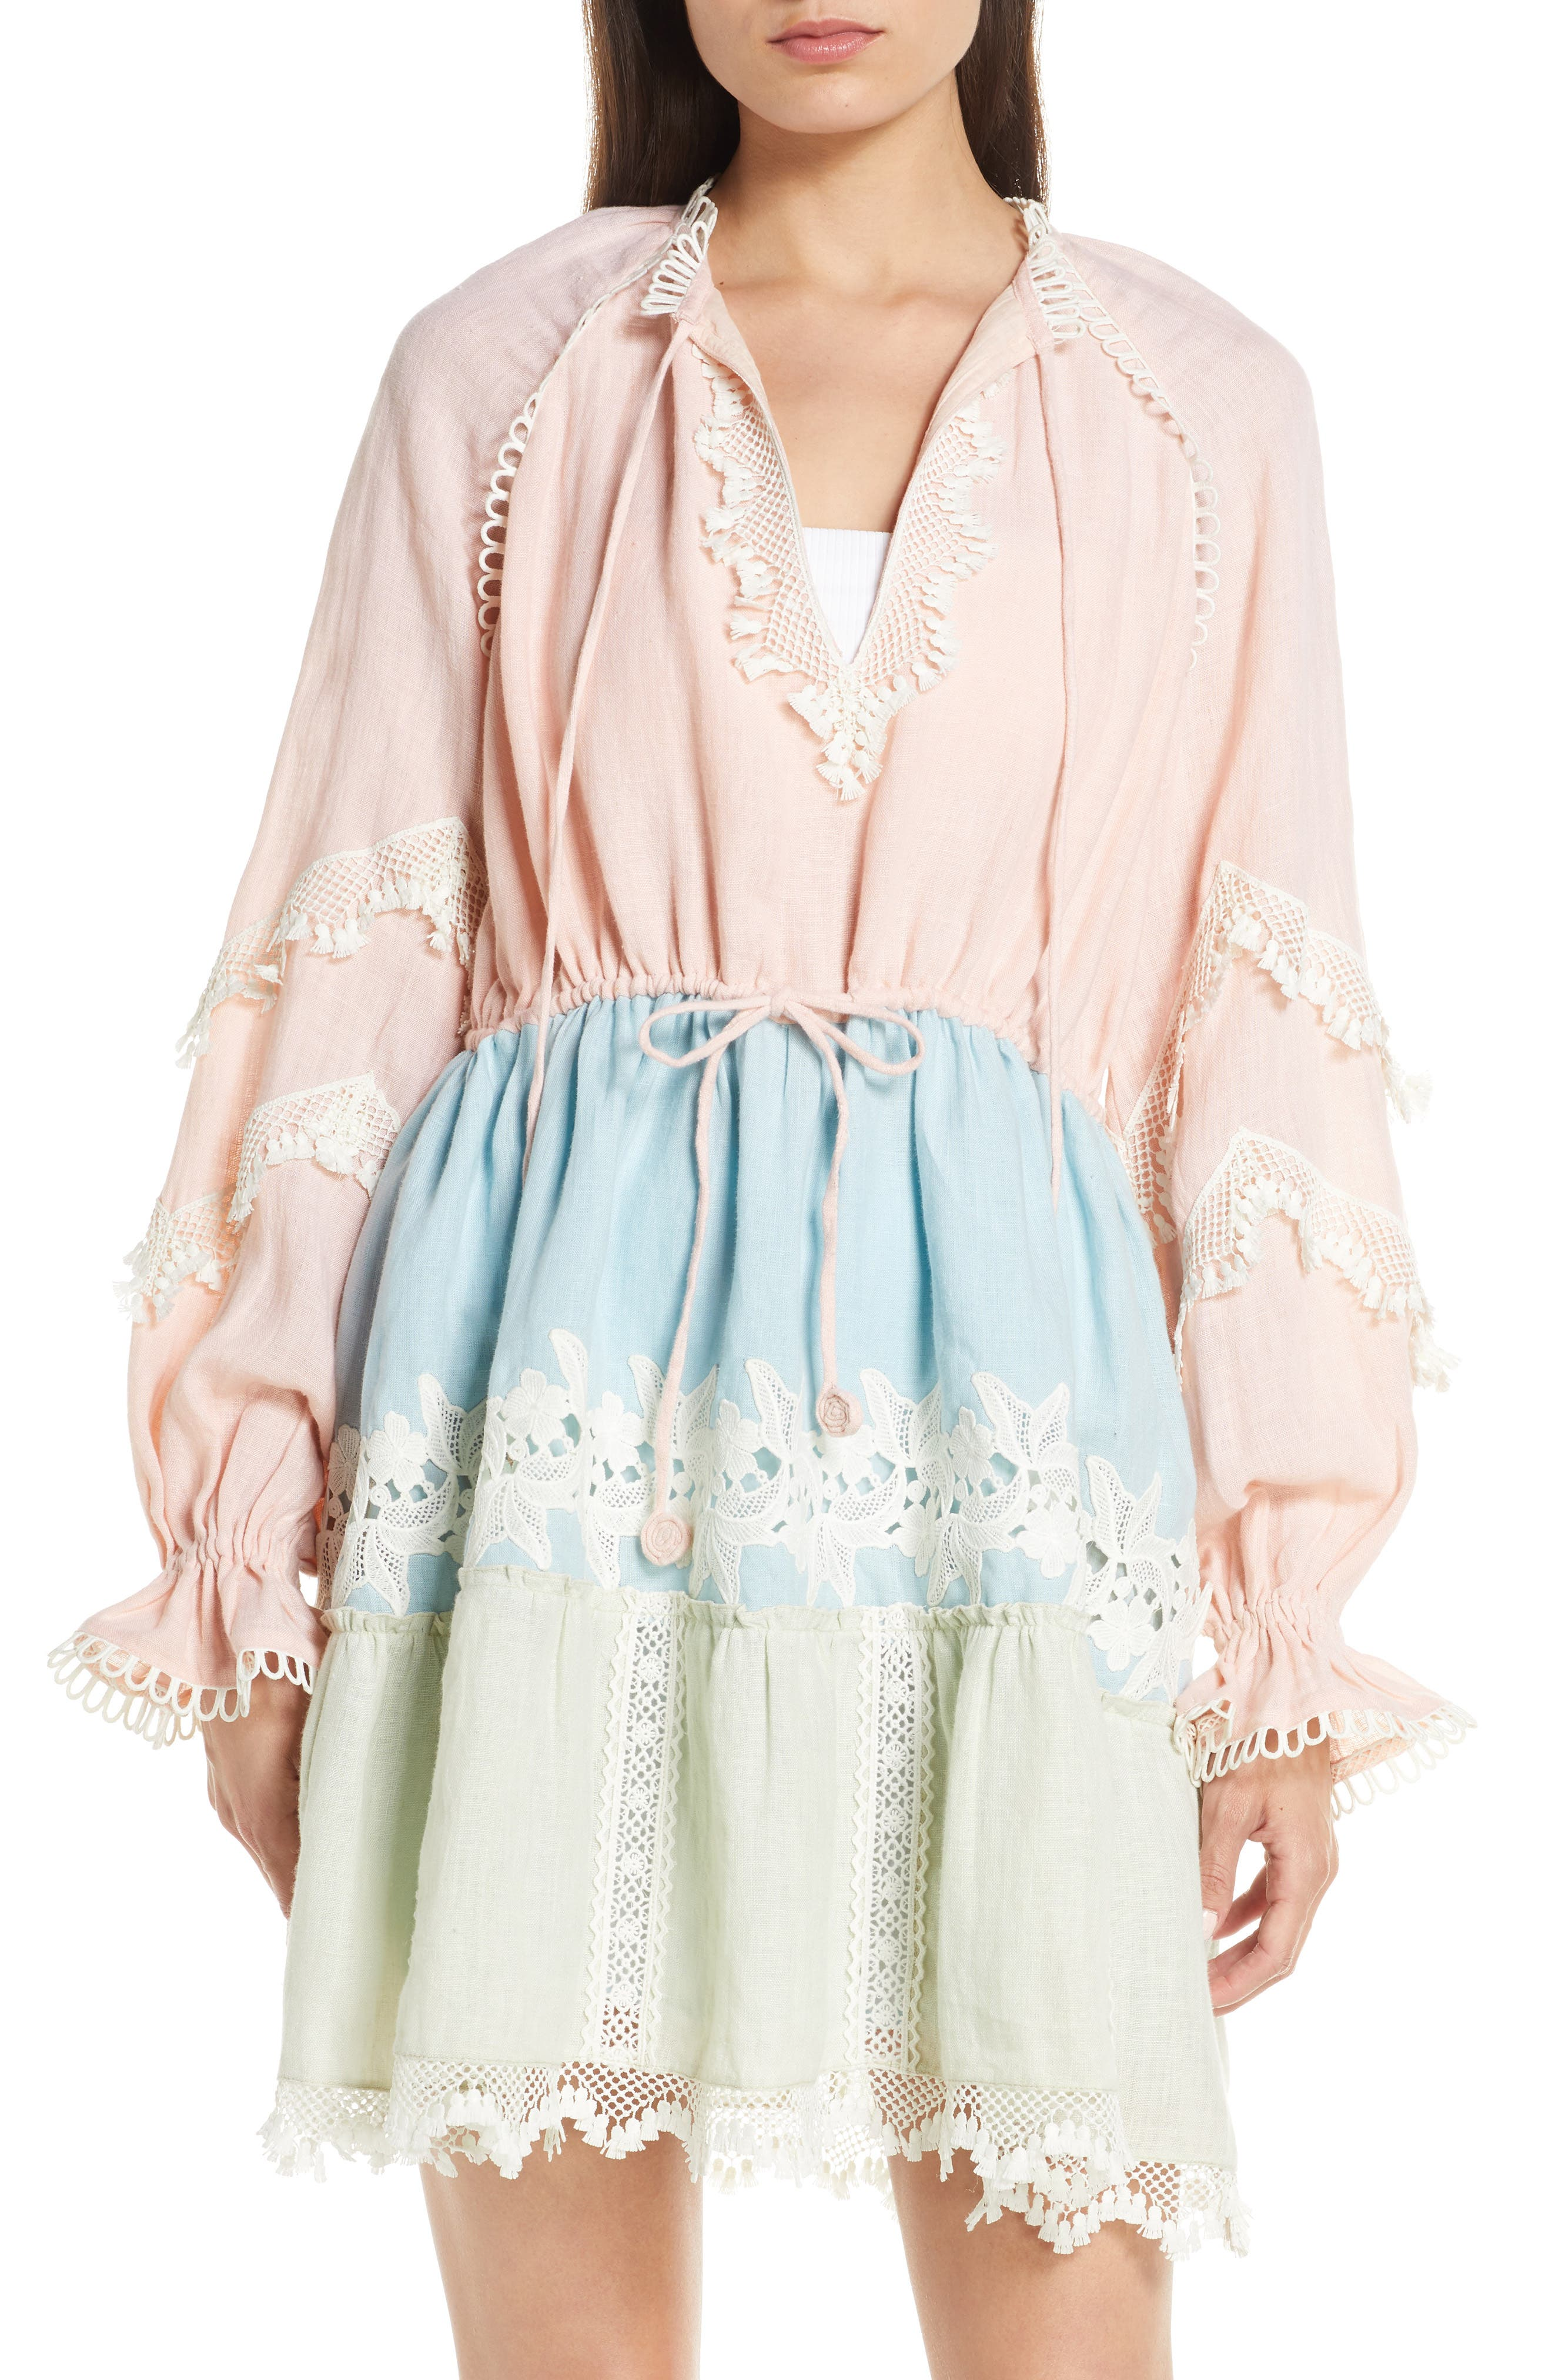 Hemant & Nandita Embroidered Tiered Cover-Up Dress, Pink